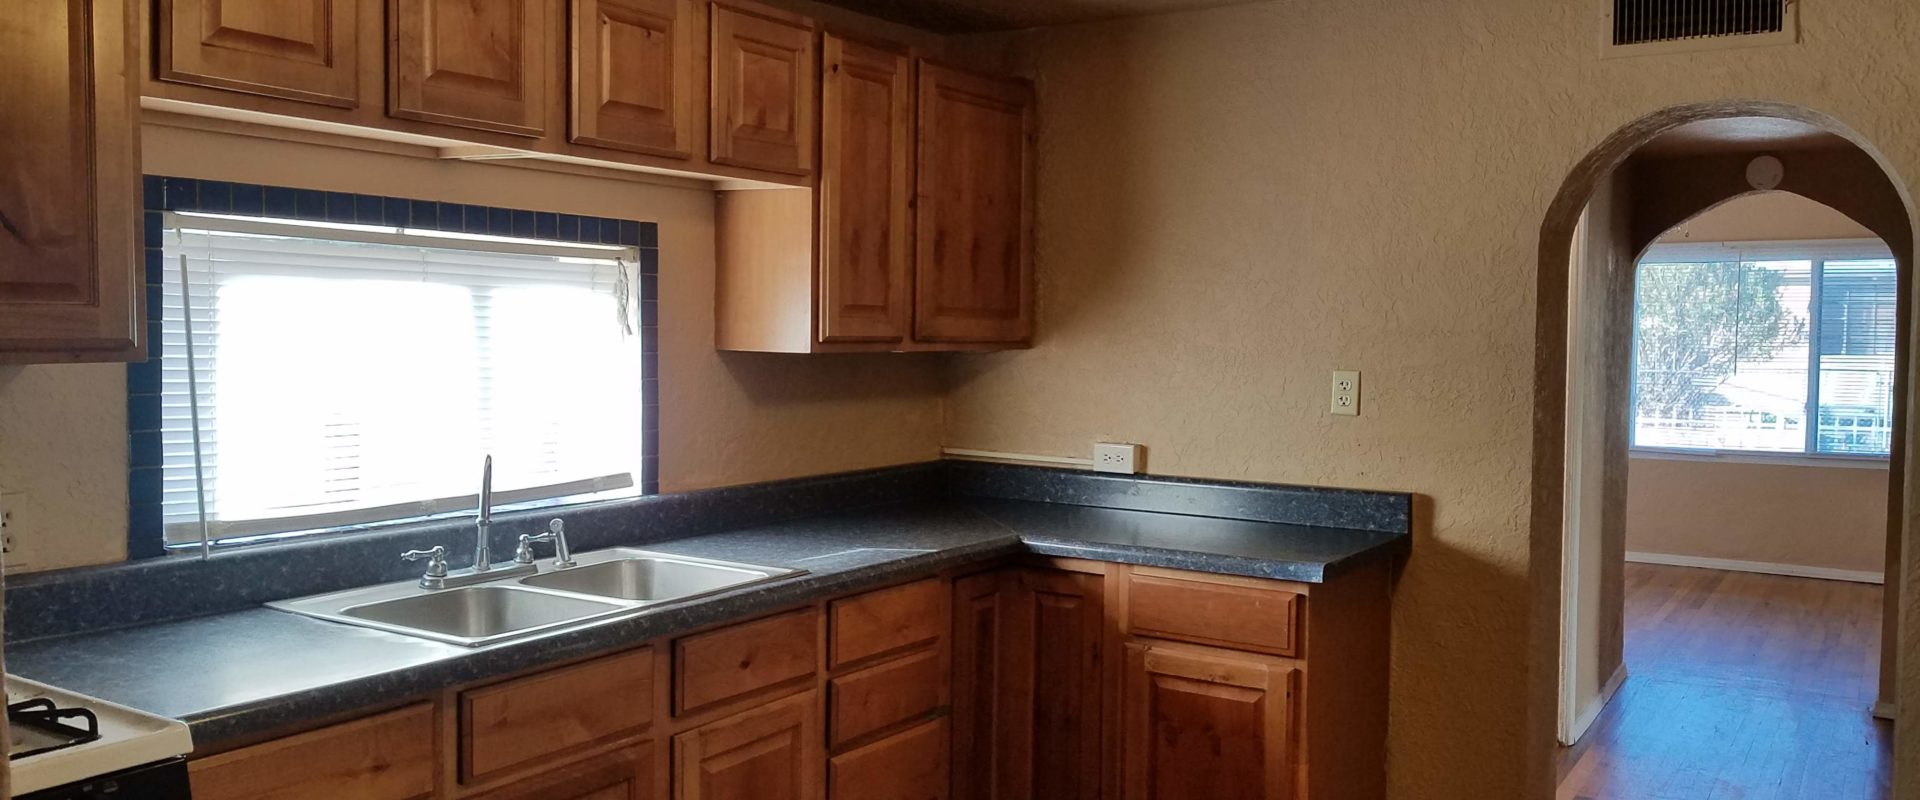 810 E. May Avenue, Las Cruces, NM  88001